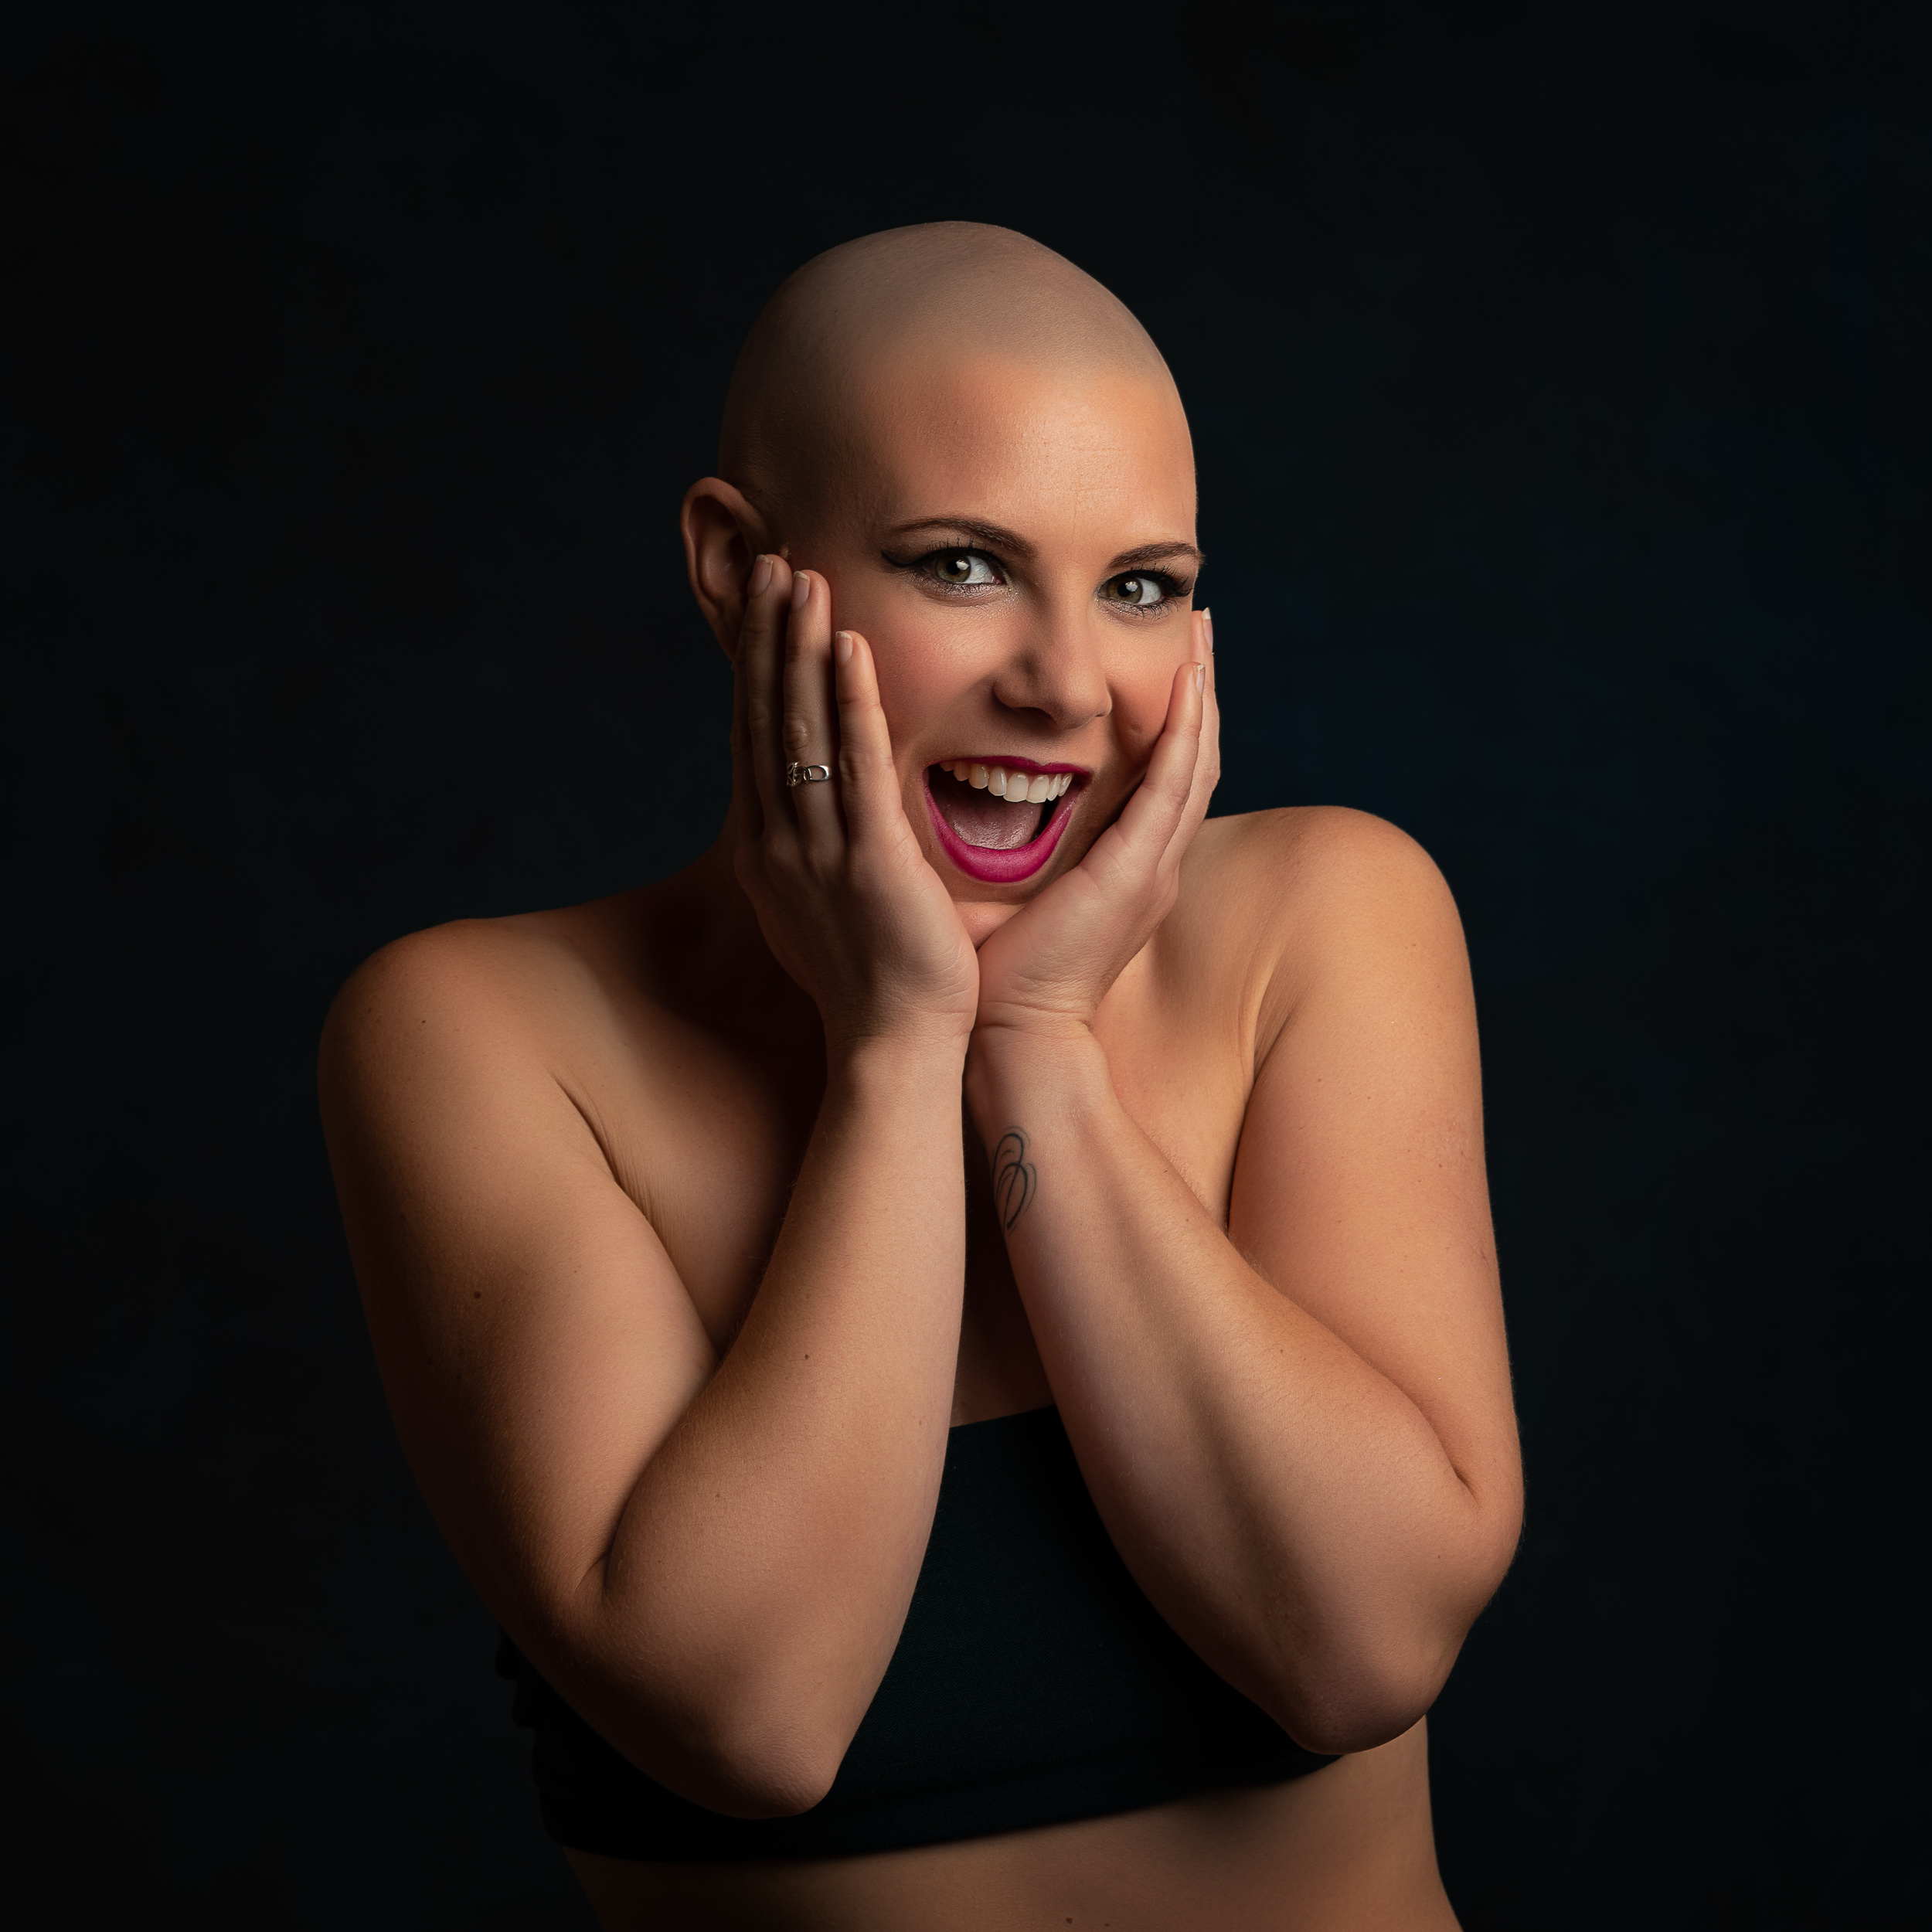 Portrait of a beautiful lady with no hair for her portrait session in Sandbach, Cheshire